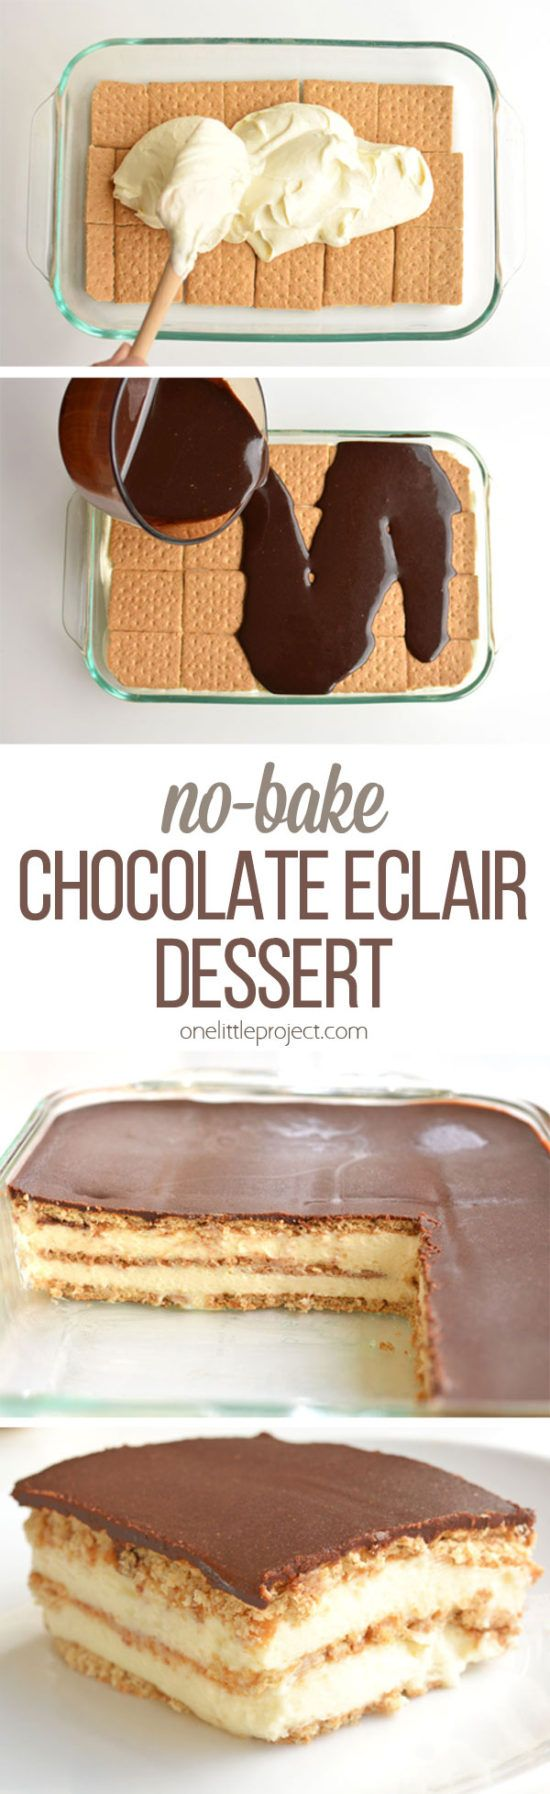 Chocolate Eclair No Bake Cake Is To Die For | The WHOot